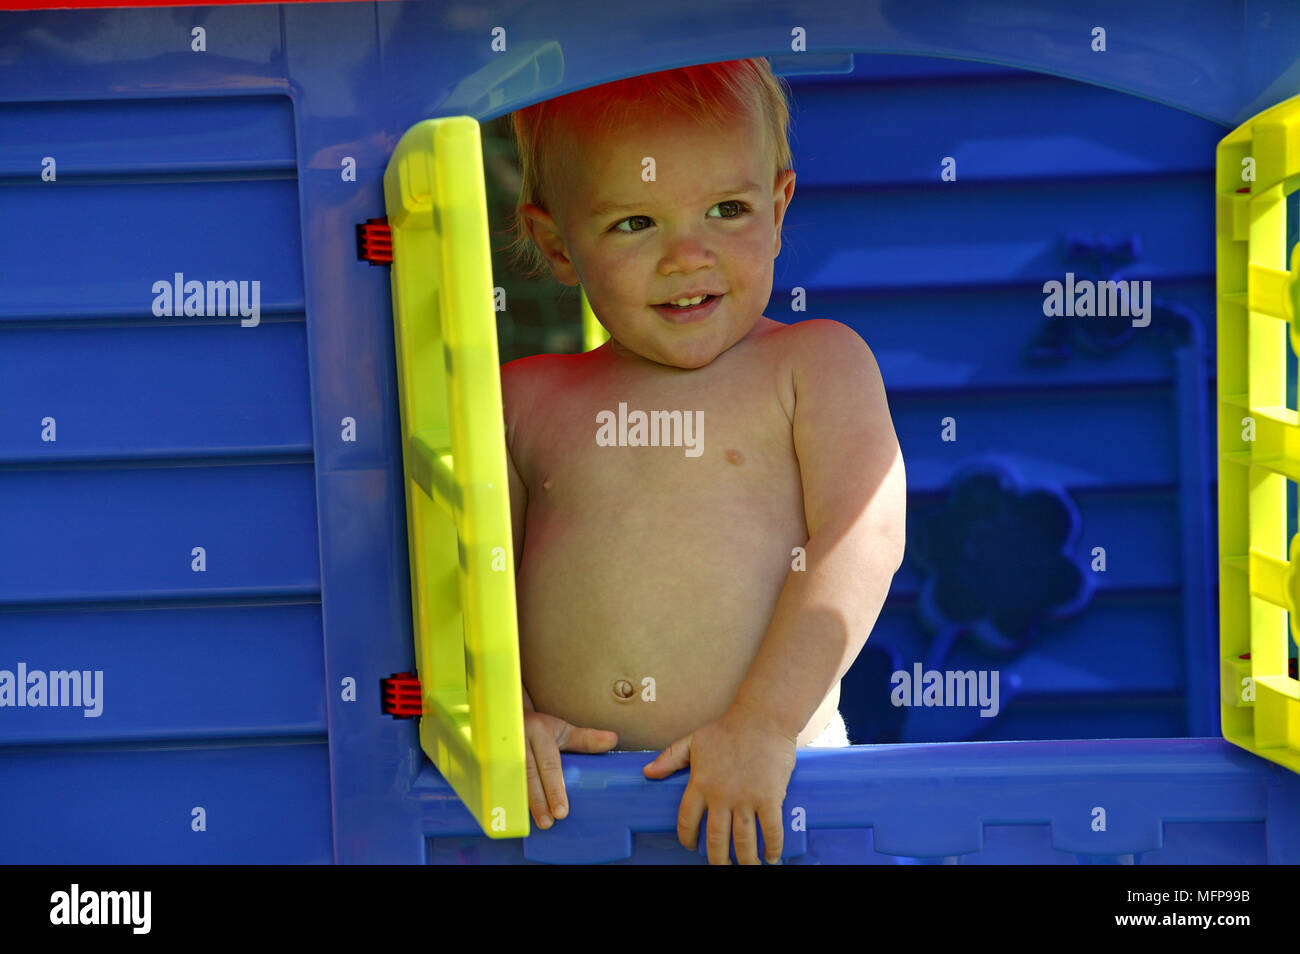 Boy playing in his Toy House - Stock Image